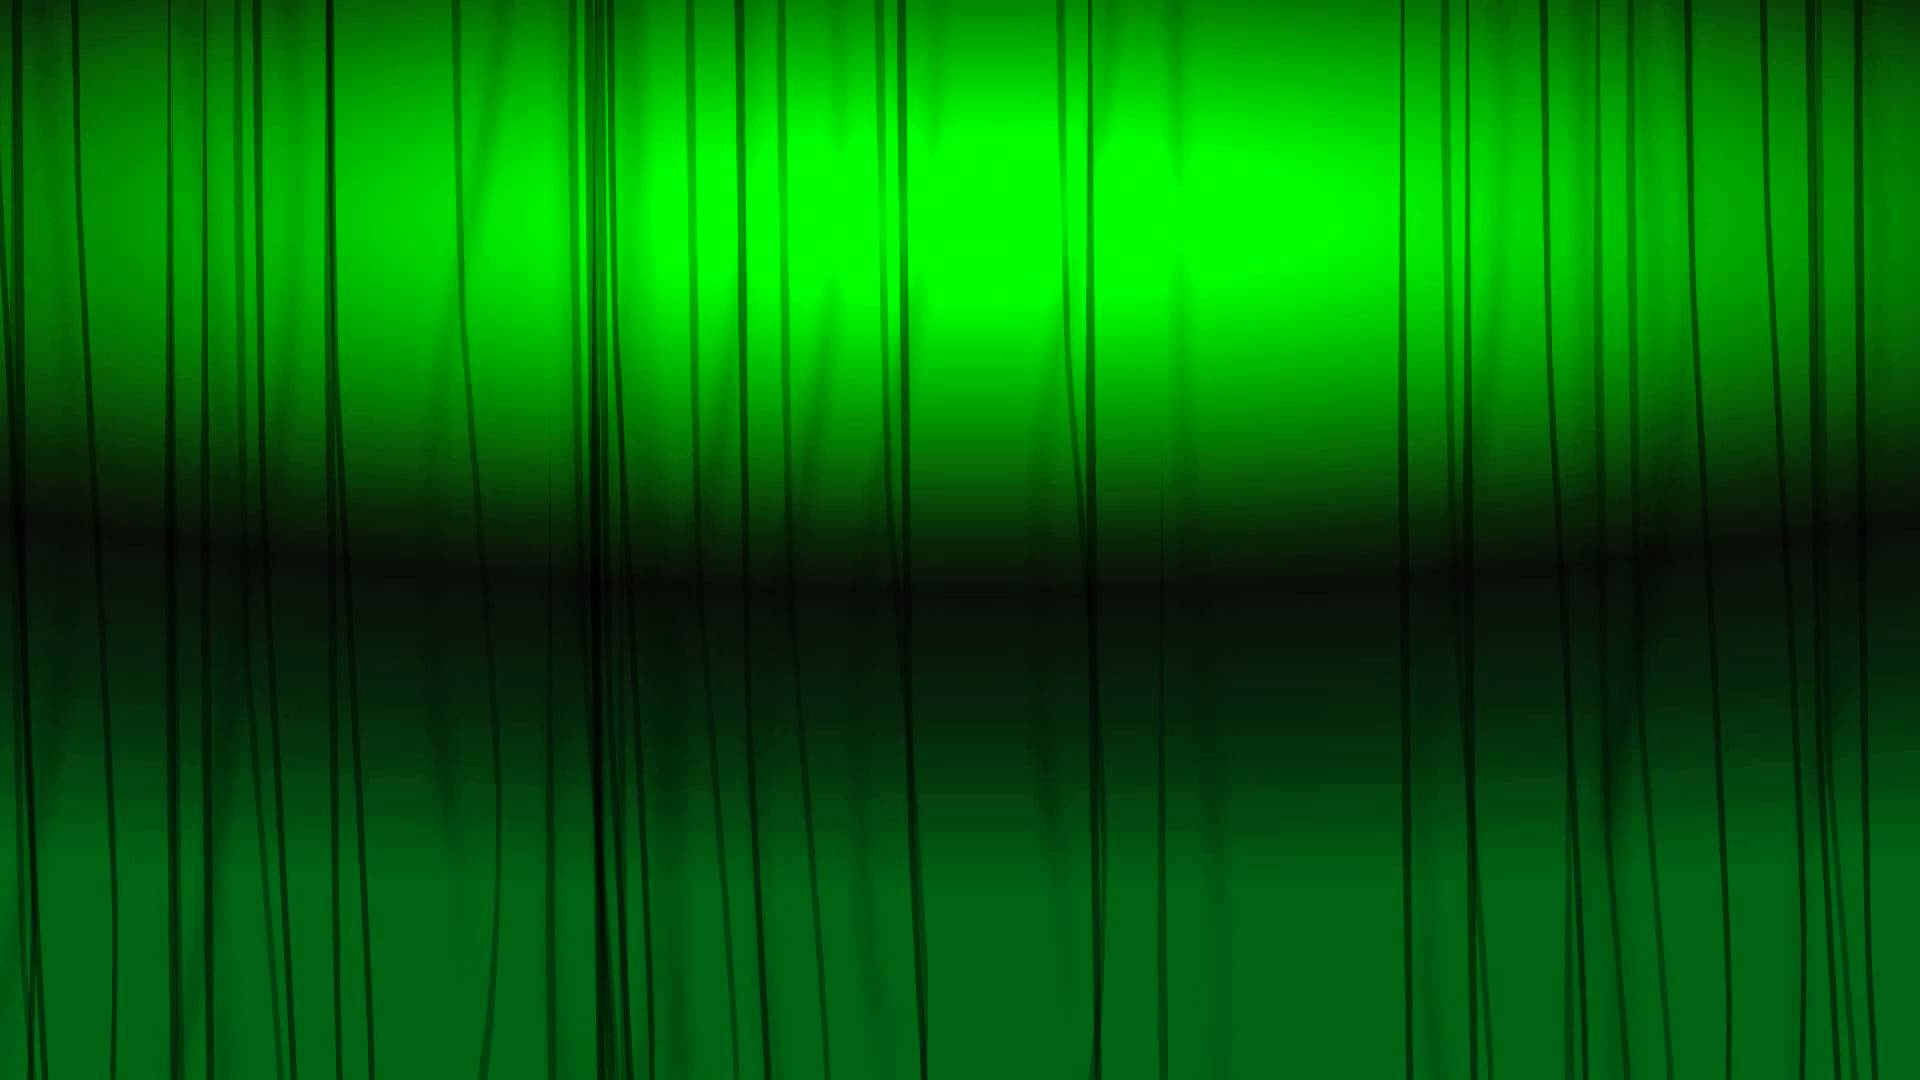 Free download Lines Green Screen Background Animated